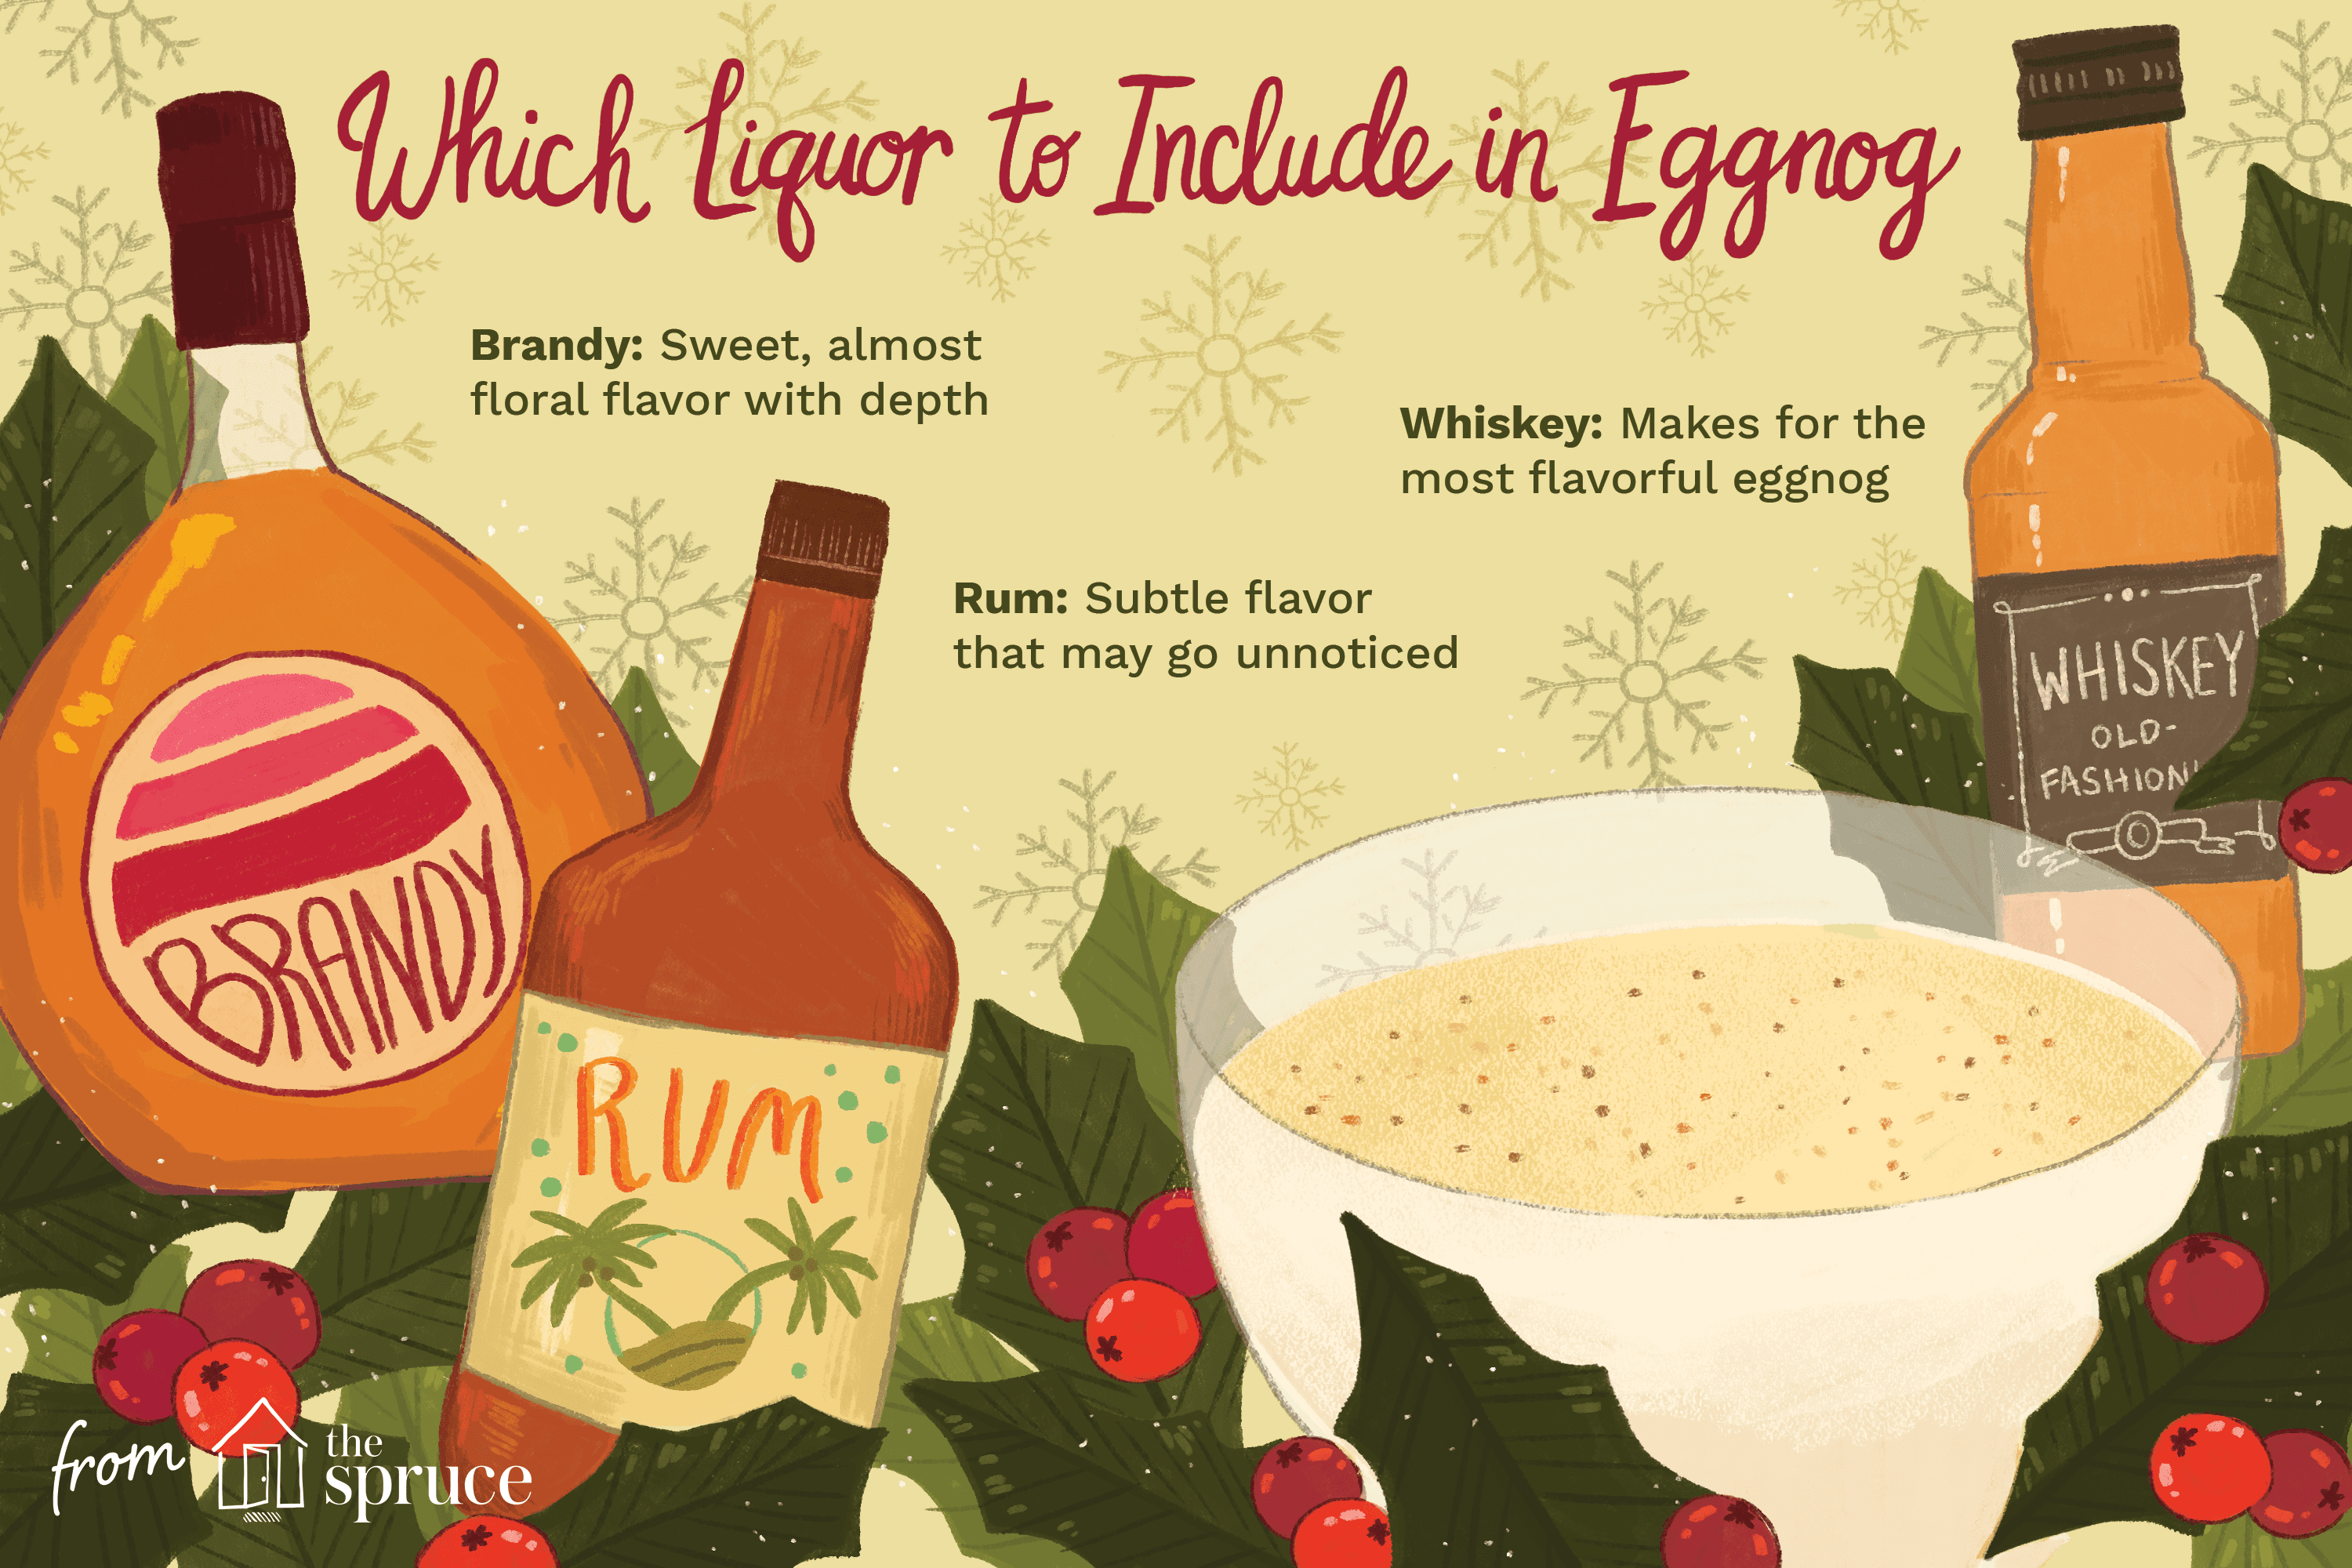 illustration with info on different liquors for eggnog